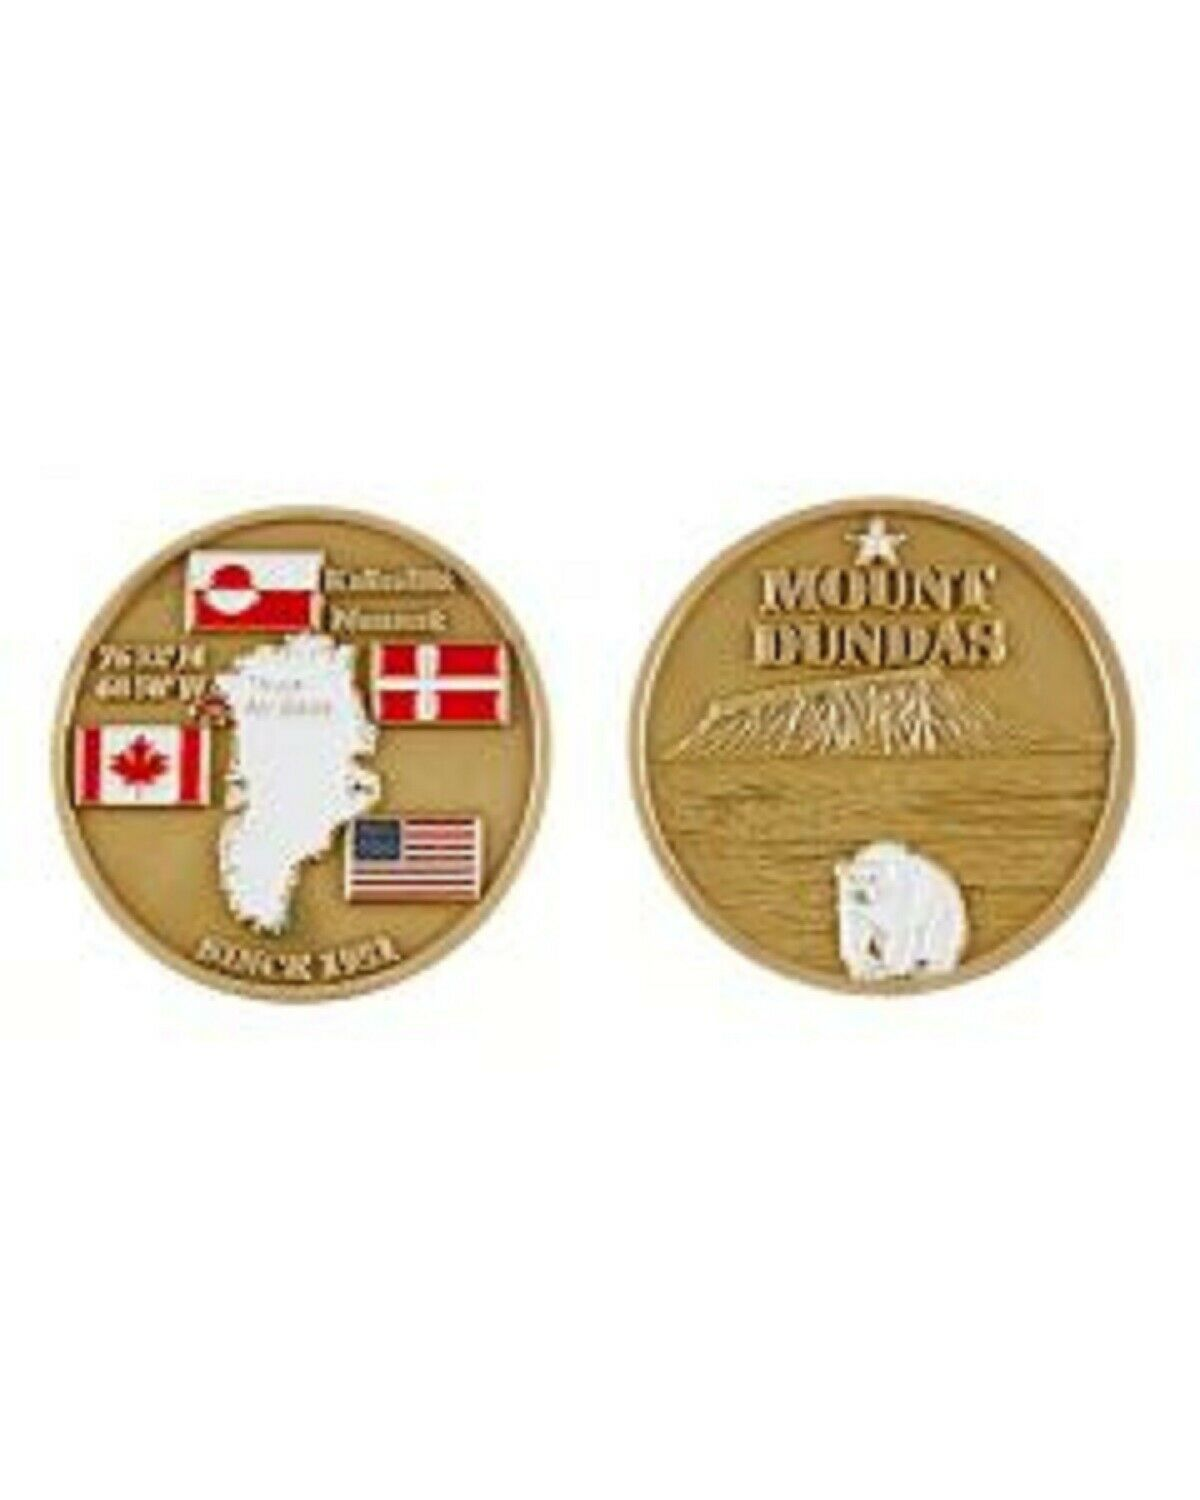 "THULE AIR FORCE BASE MOUNT TUNDAS POLAR BEAR  1.75"" CHALLENGE COIN"